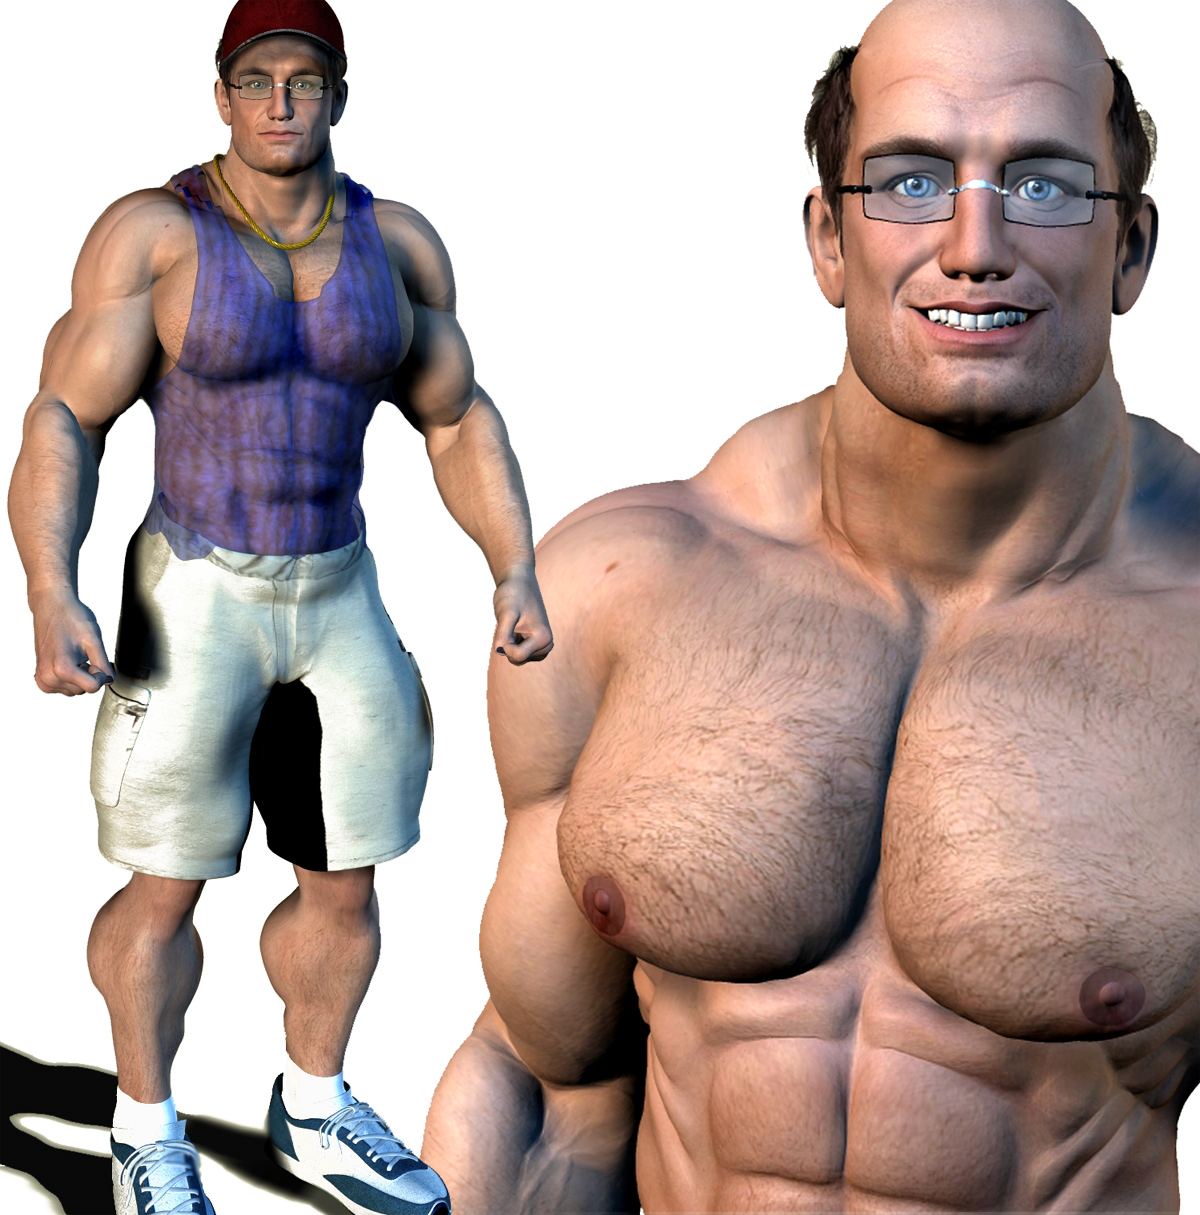 Nerdy Muscle Morph Images